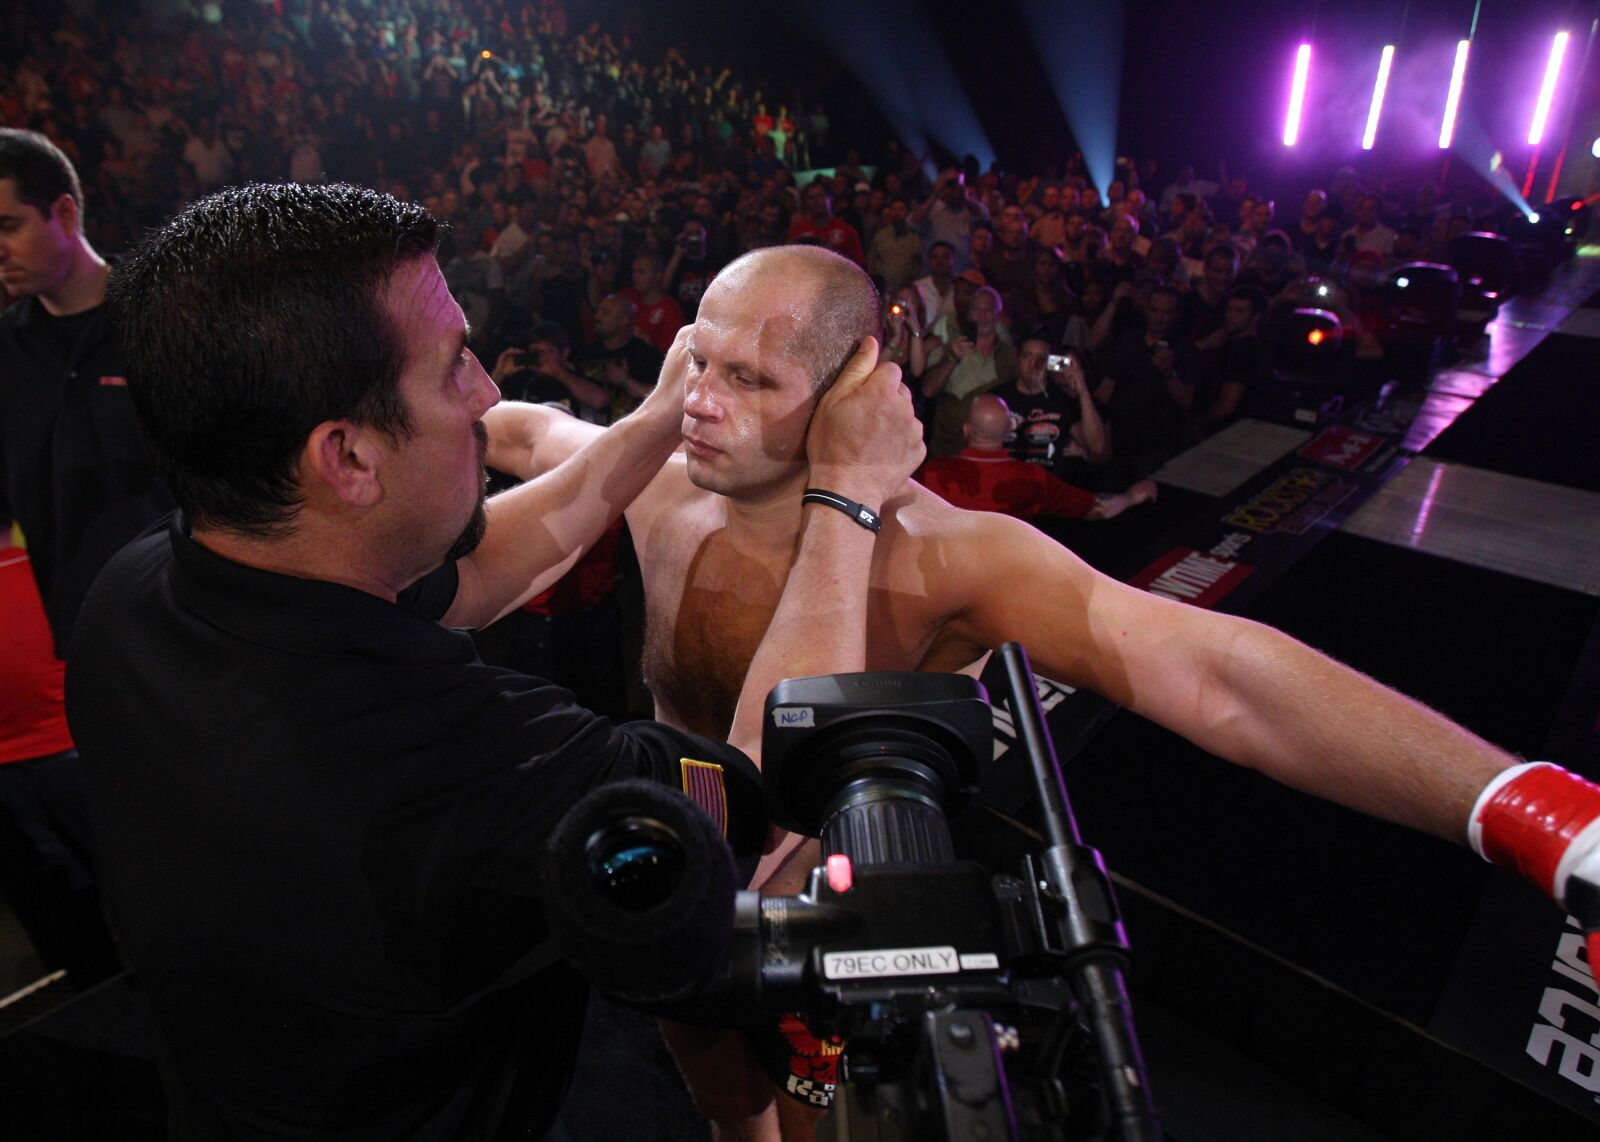 HOFFMAN ESTATES, IL - JULY 30: Fedor Emelianenko prepares to enter the cage before his fight against Dan Henderson at the Strikeforce event at Sears Centre Arena on July 30, 2011 in Hoffman Estates, Illinois. (Photo by Josh Hedges/Forza LLC/Forza LLC via Getty Images)